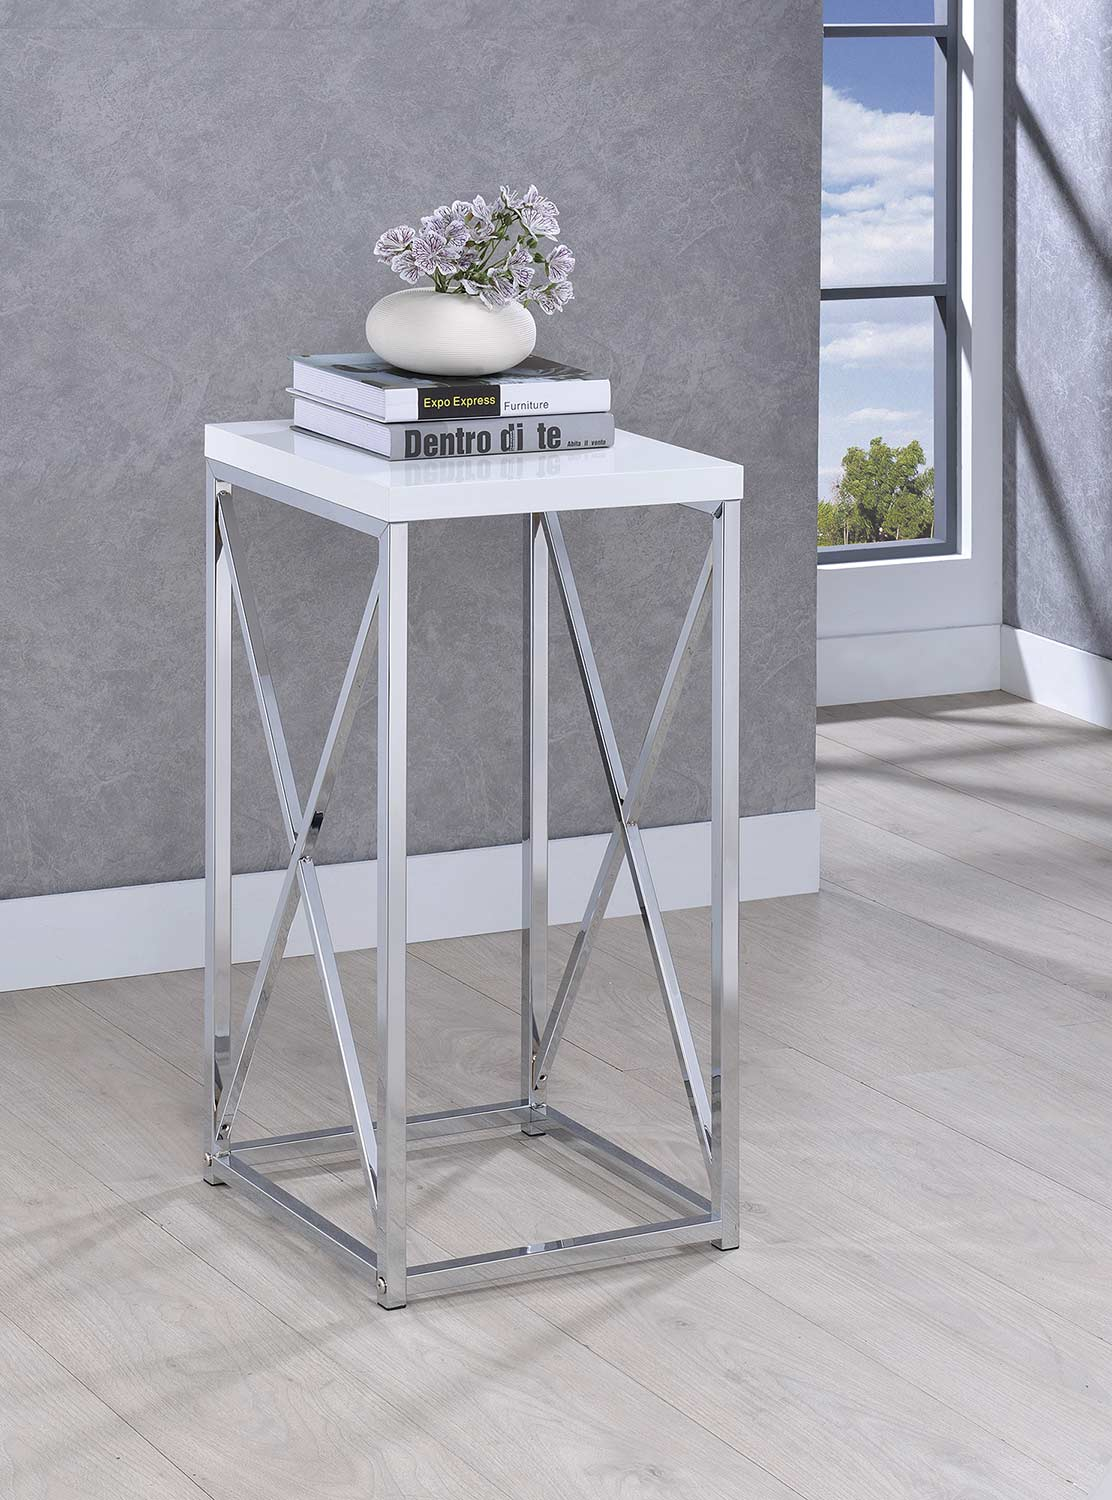 Coaster 930014 Accent Table - Chrome/White